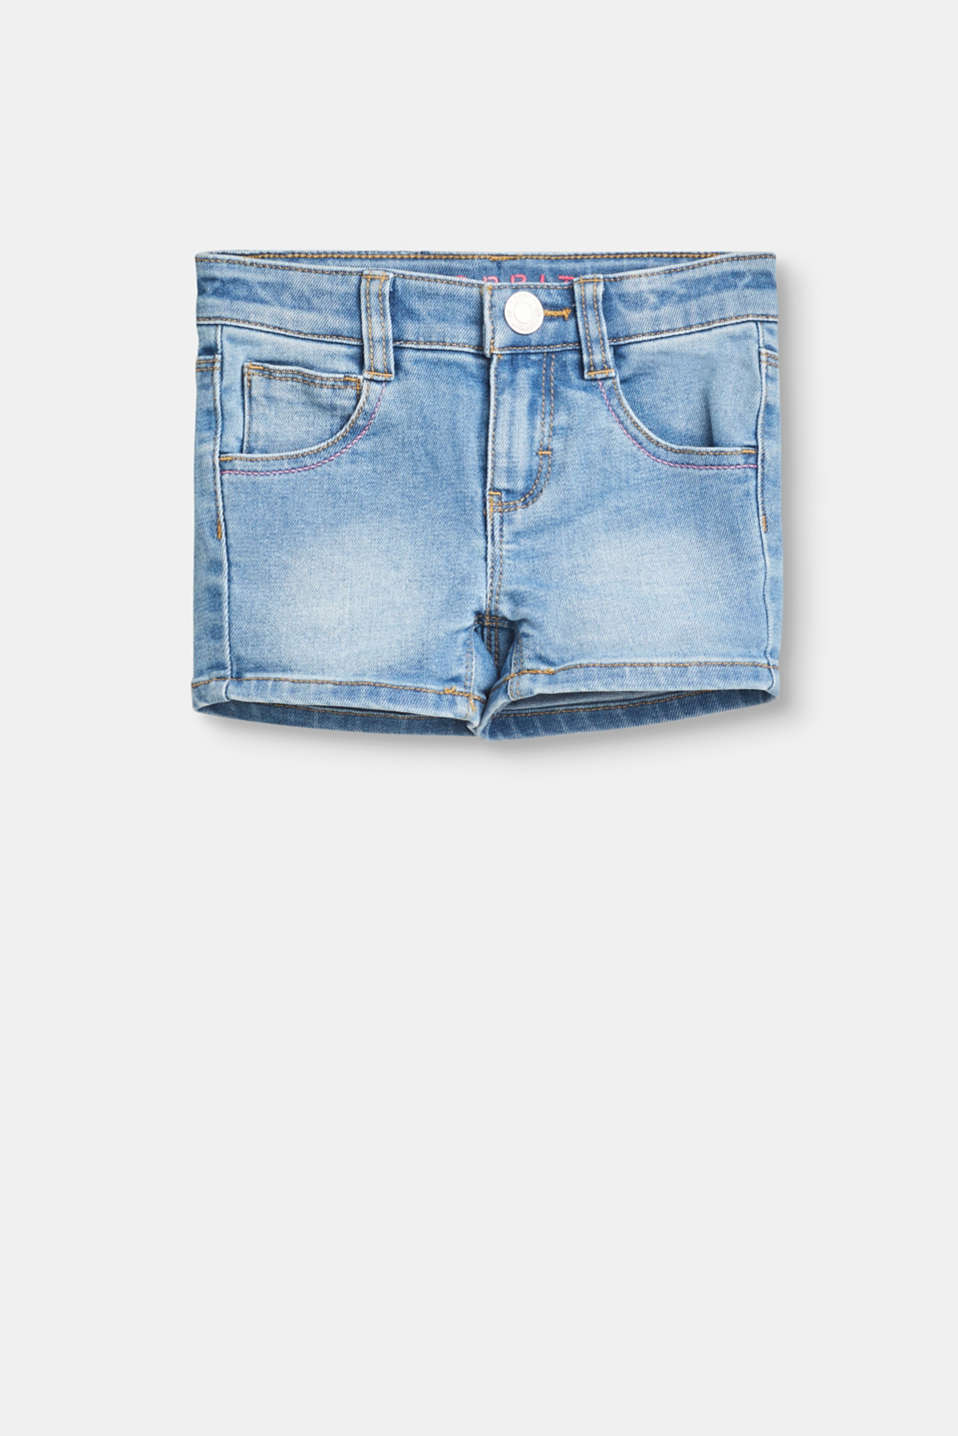 Esprit - Cotton denim shorts with stretch for comfort